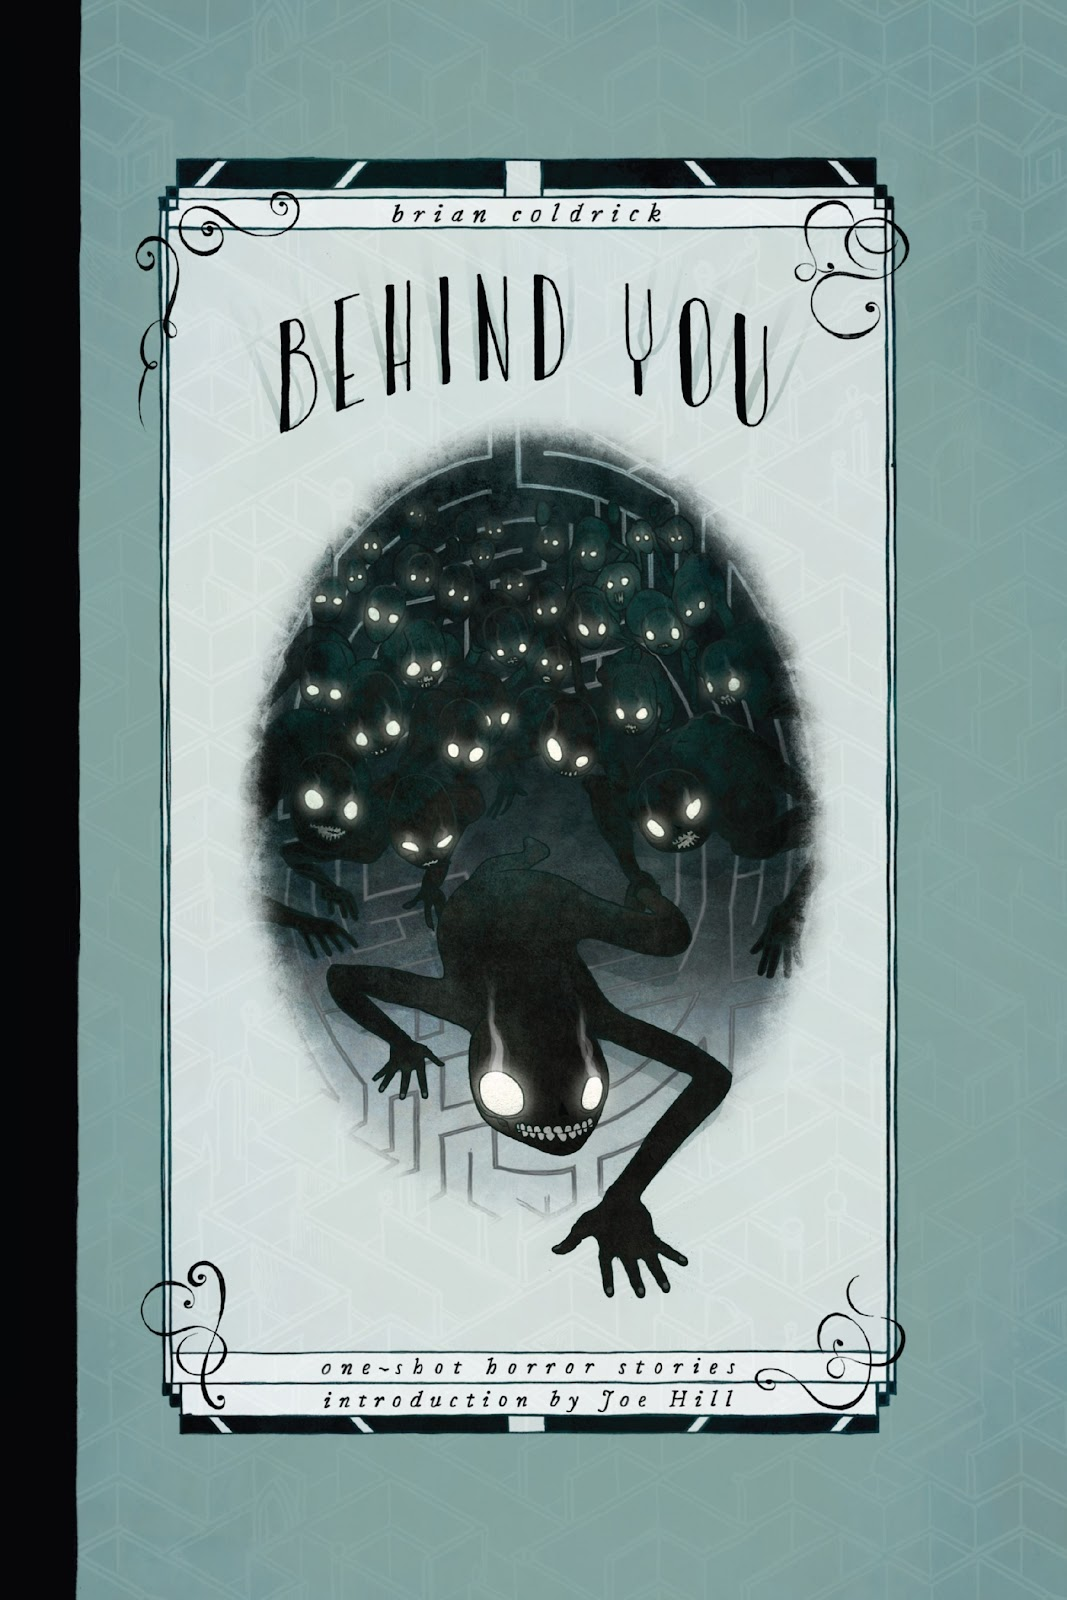 Read online Behind You: One-Shot Horror Stories comic -  Issue # TPB (Part 1) - 1